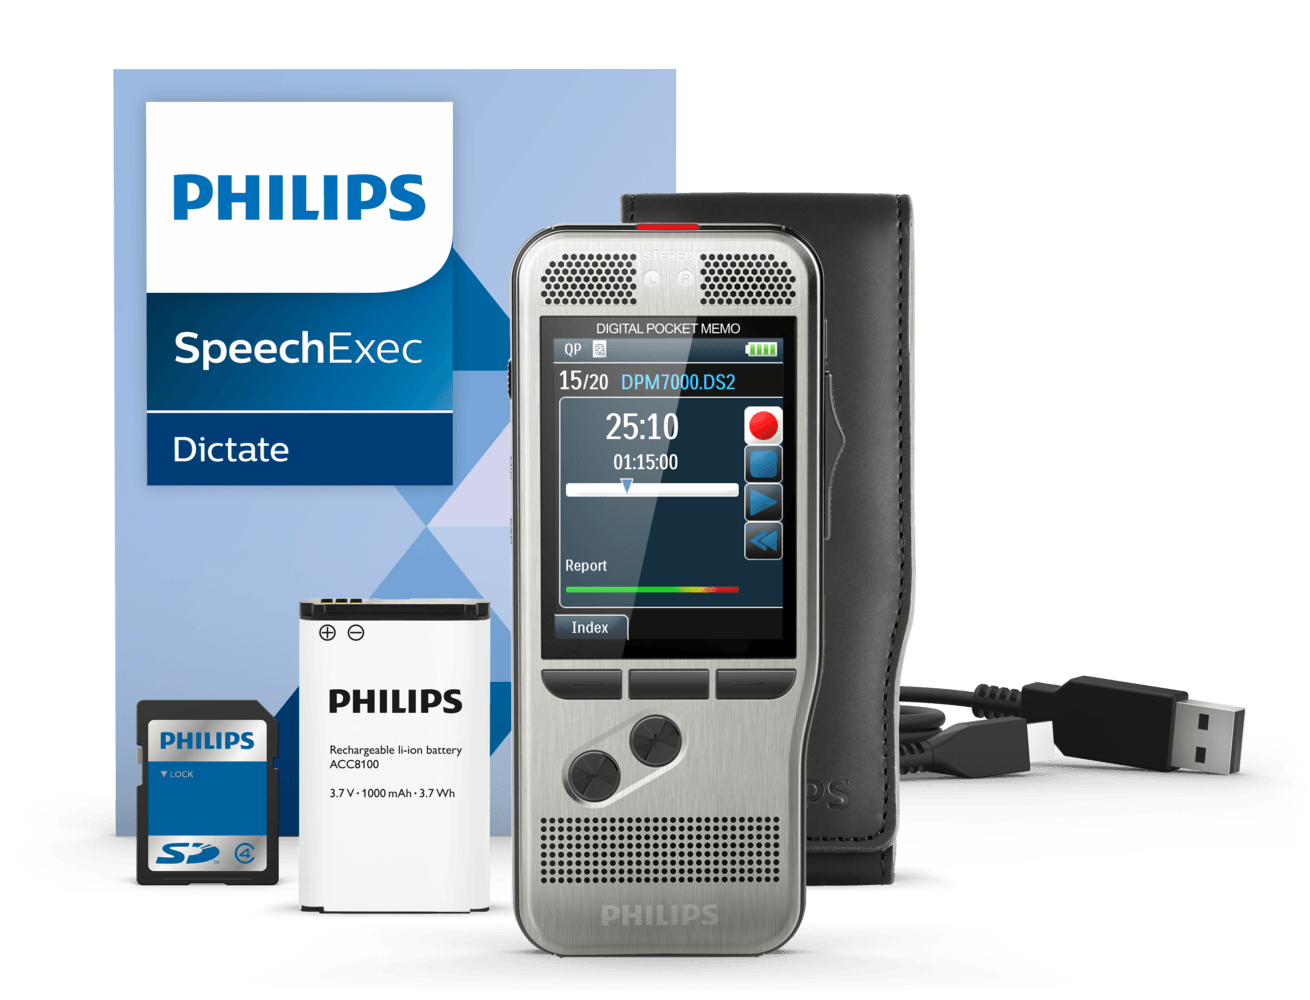 csm_dpm7000_philips-pocket-memo_pap_831142d806